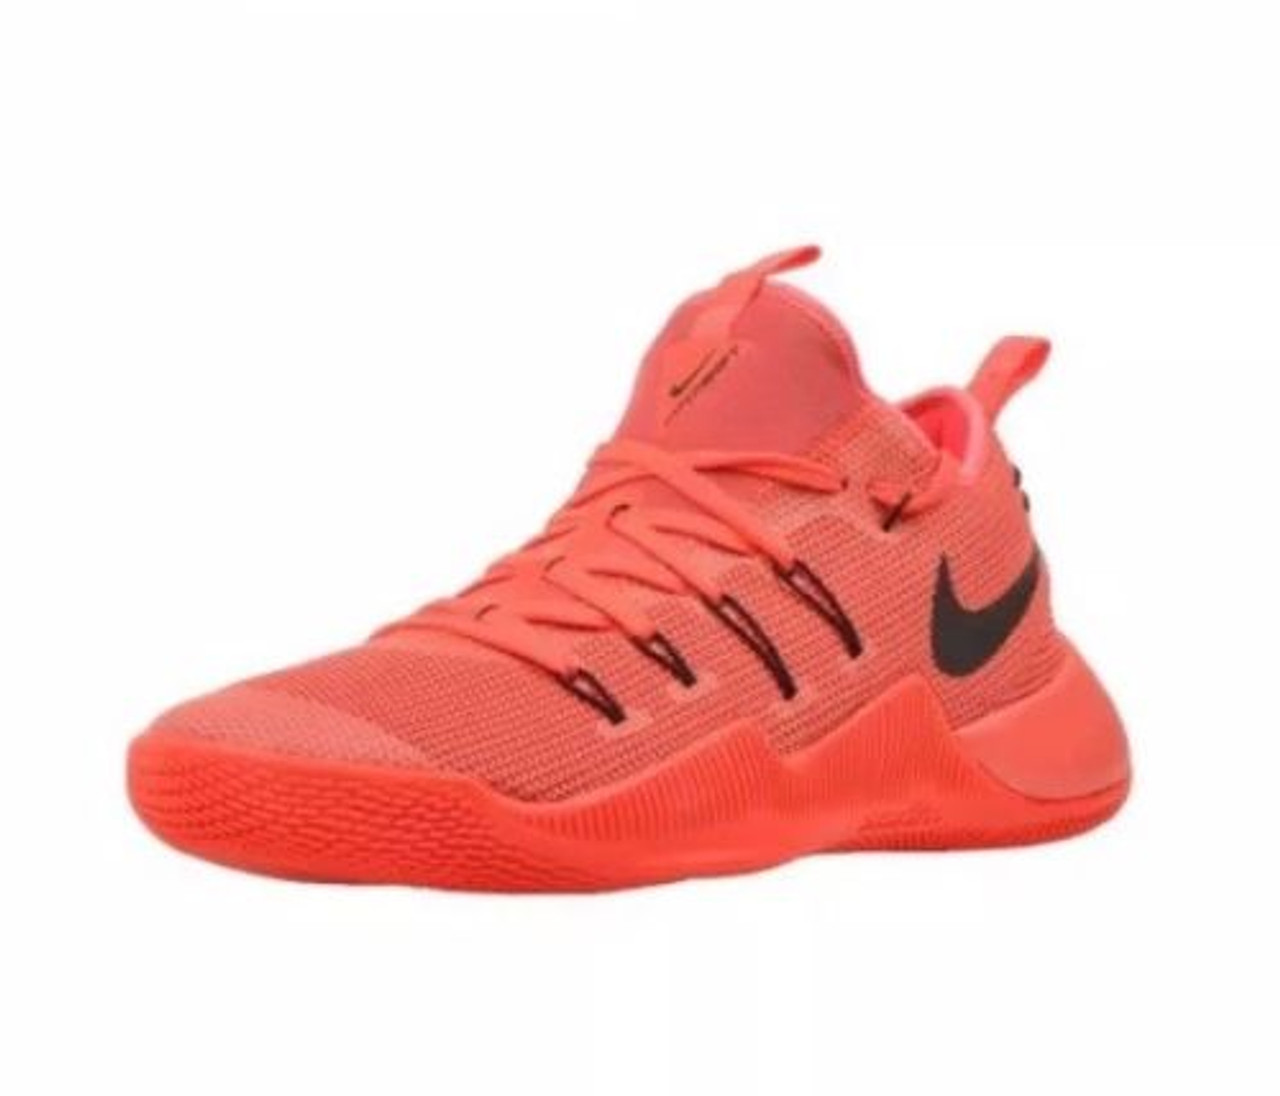 5c5f7df909d8 ... inexpensive mens nike hypershift basketball 11.5 shoes university red  2428d 86304